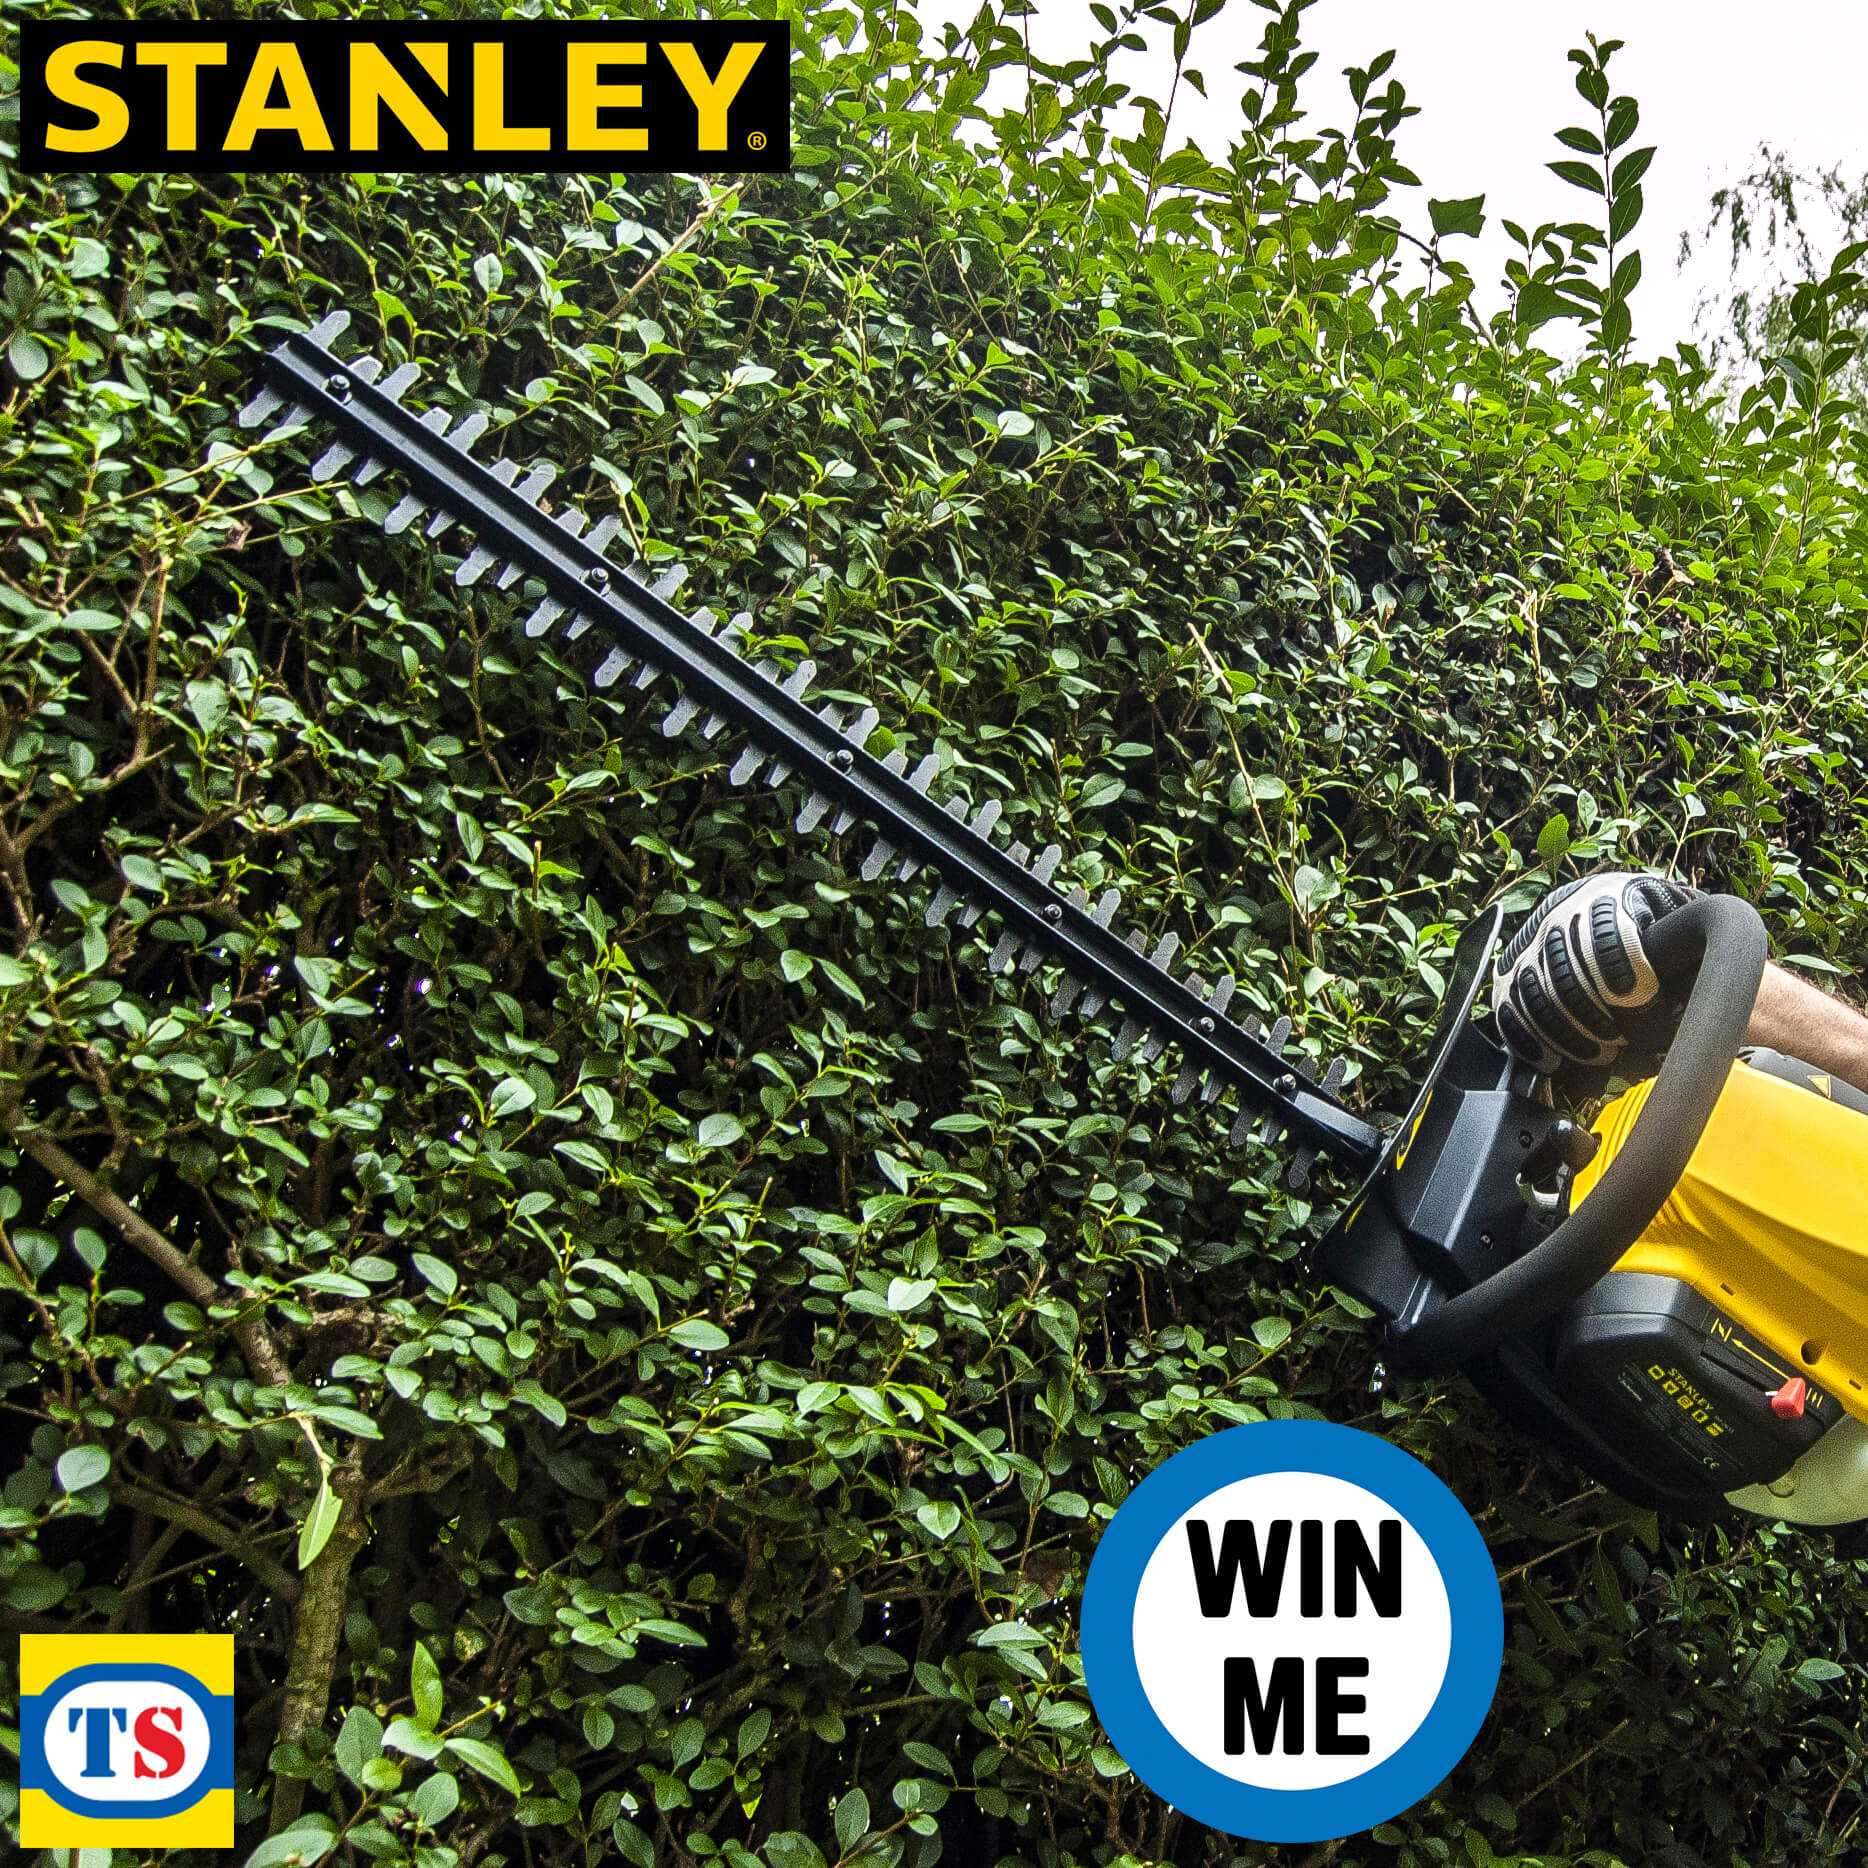 Social Competition - Stanley Hedge Trimmer Terms & Conditions